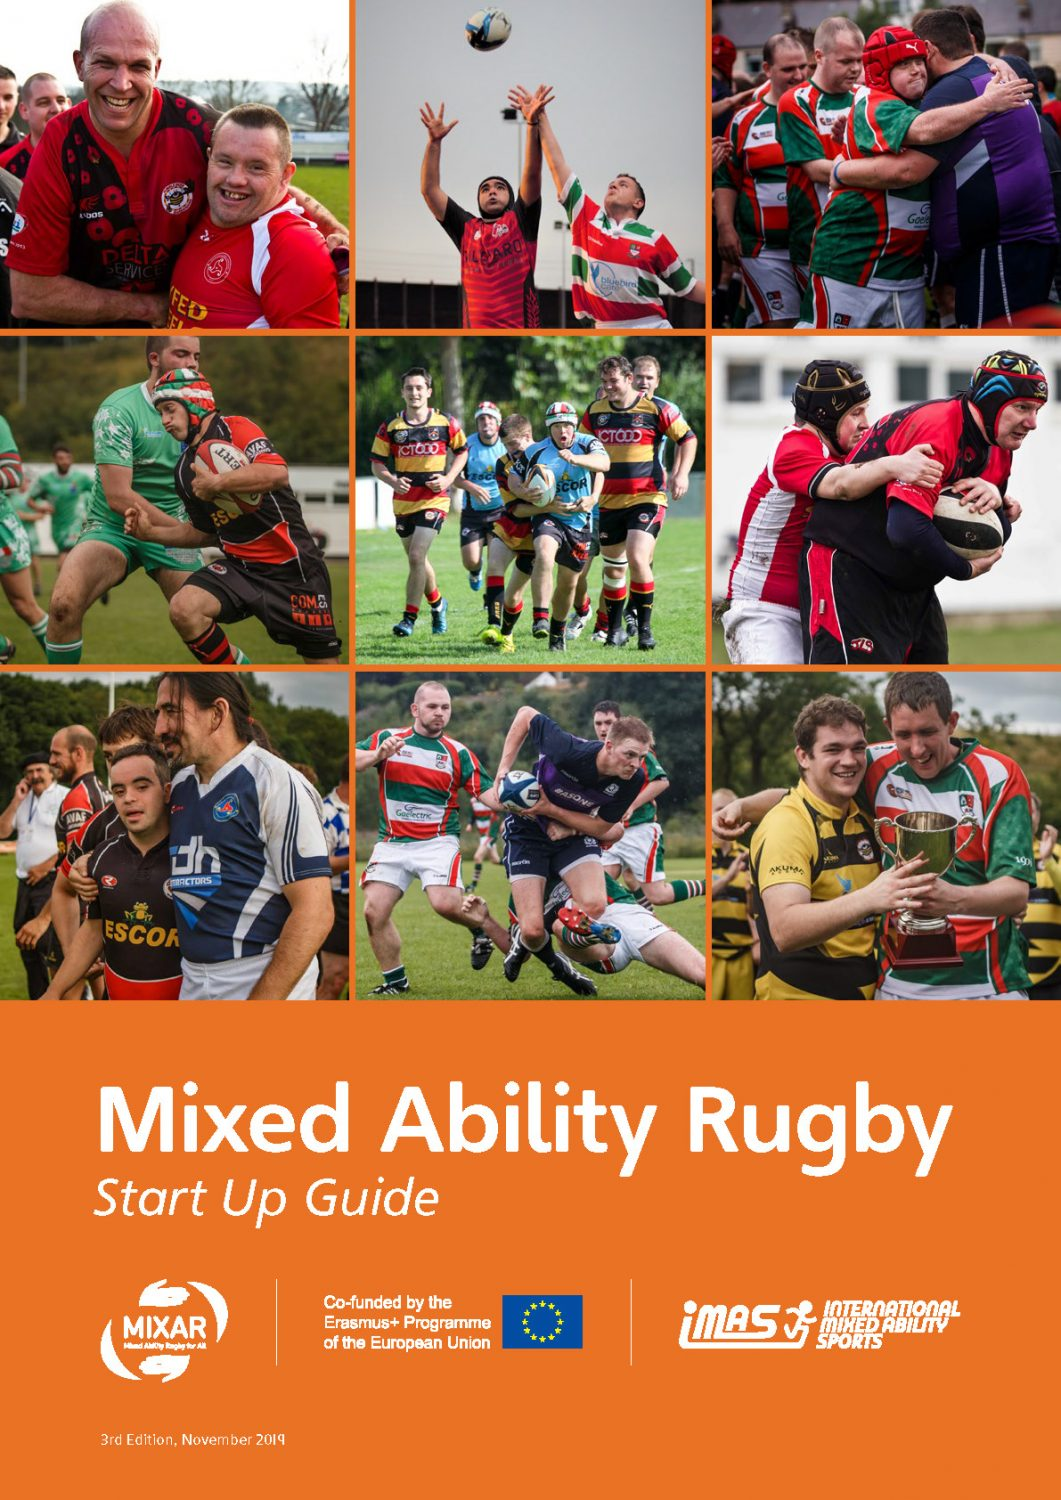 Mixed_Ability_Rugby_Guide_MIXAR_Page_01